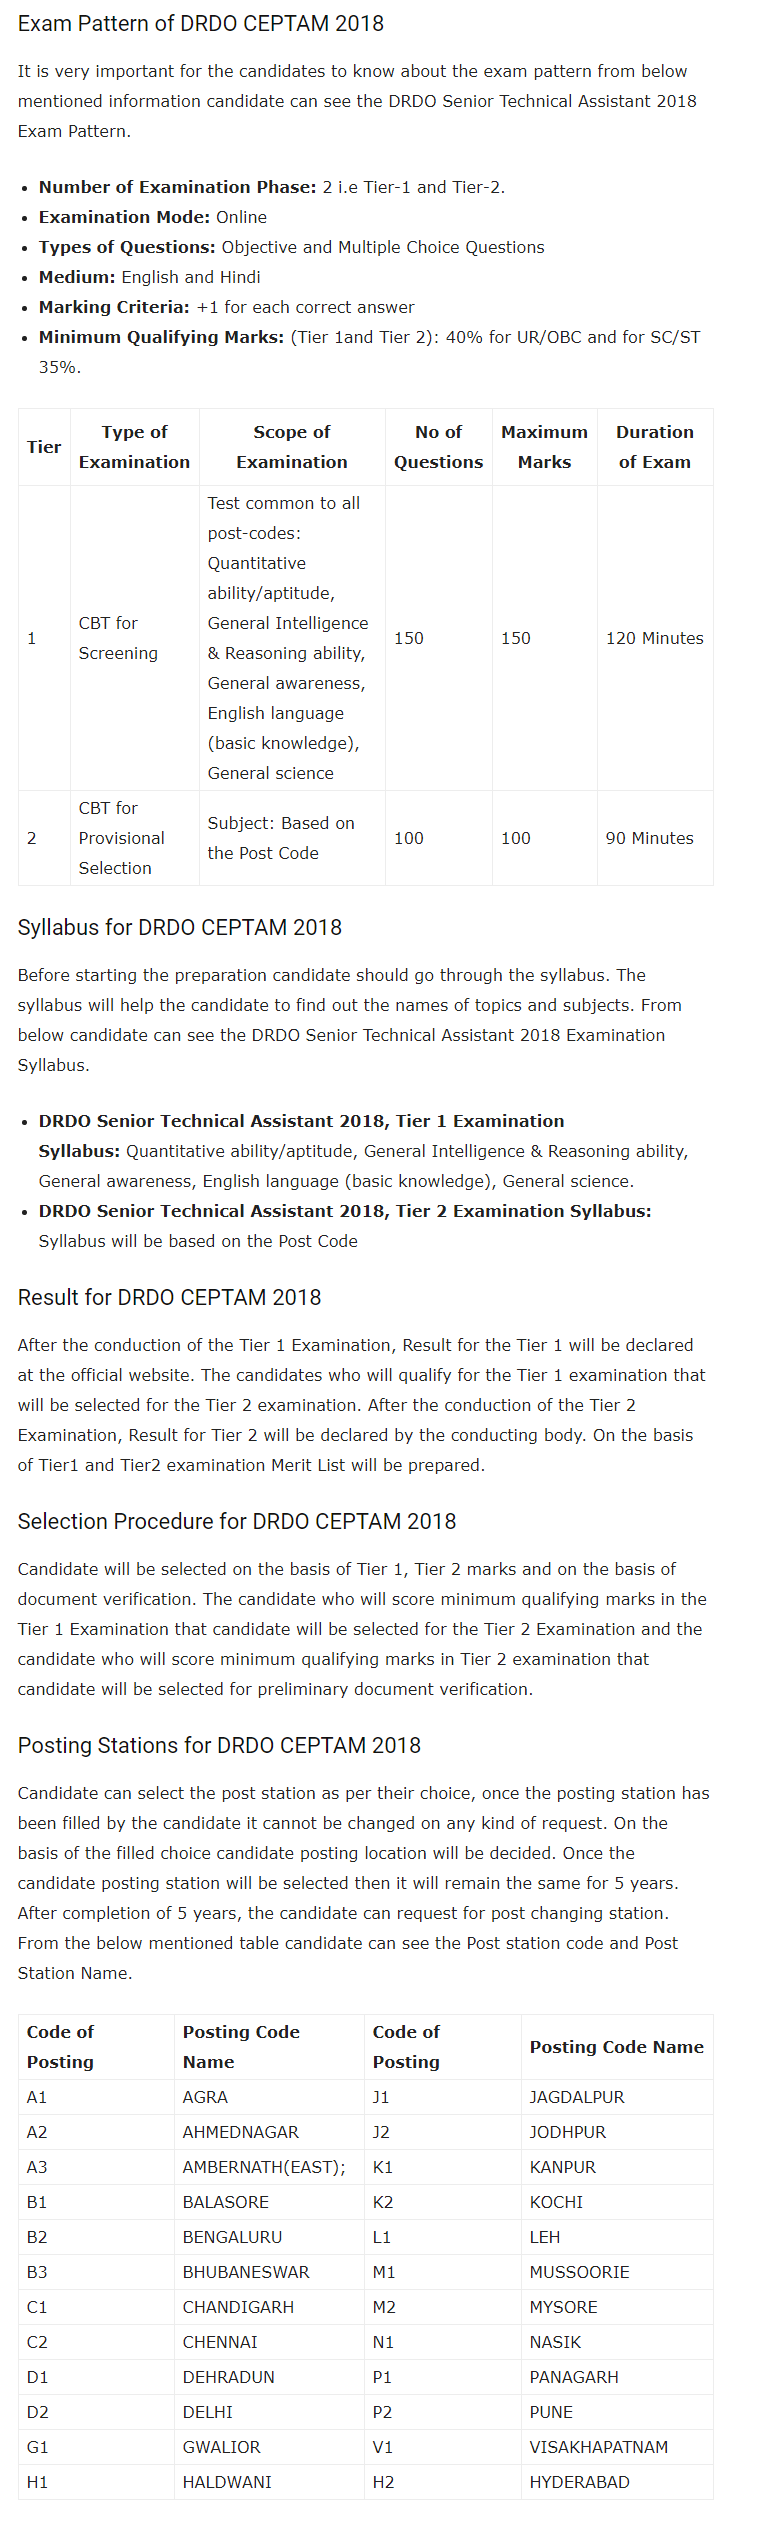 What is the syllabus of photography in the Tier 2 DRDO STA-B exam